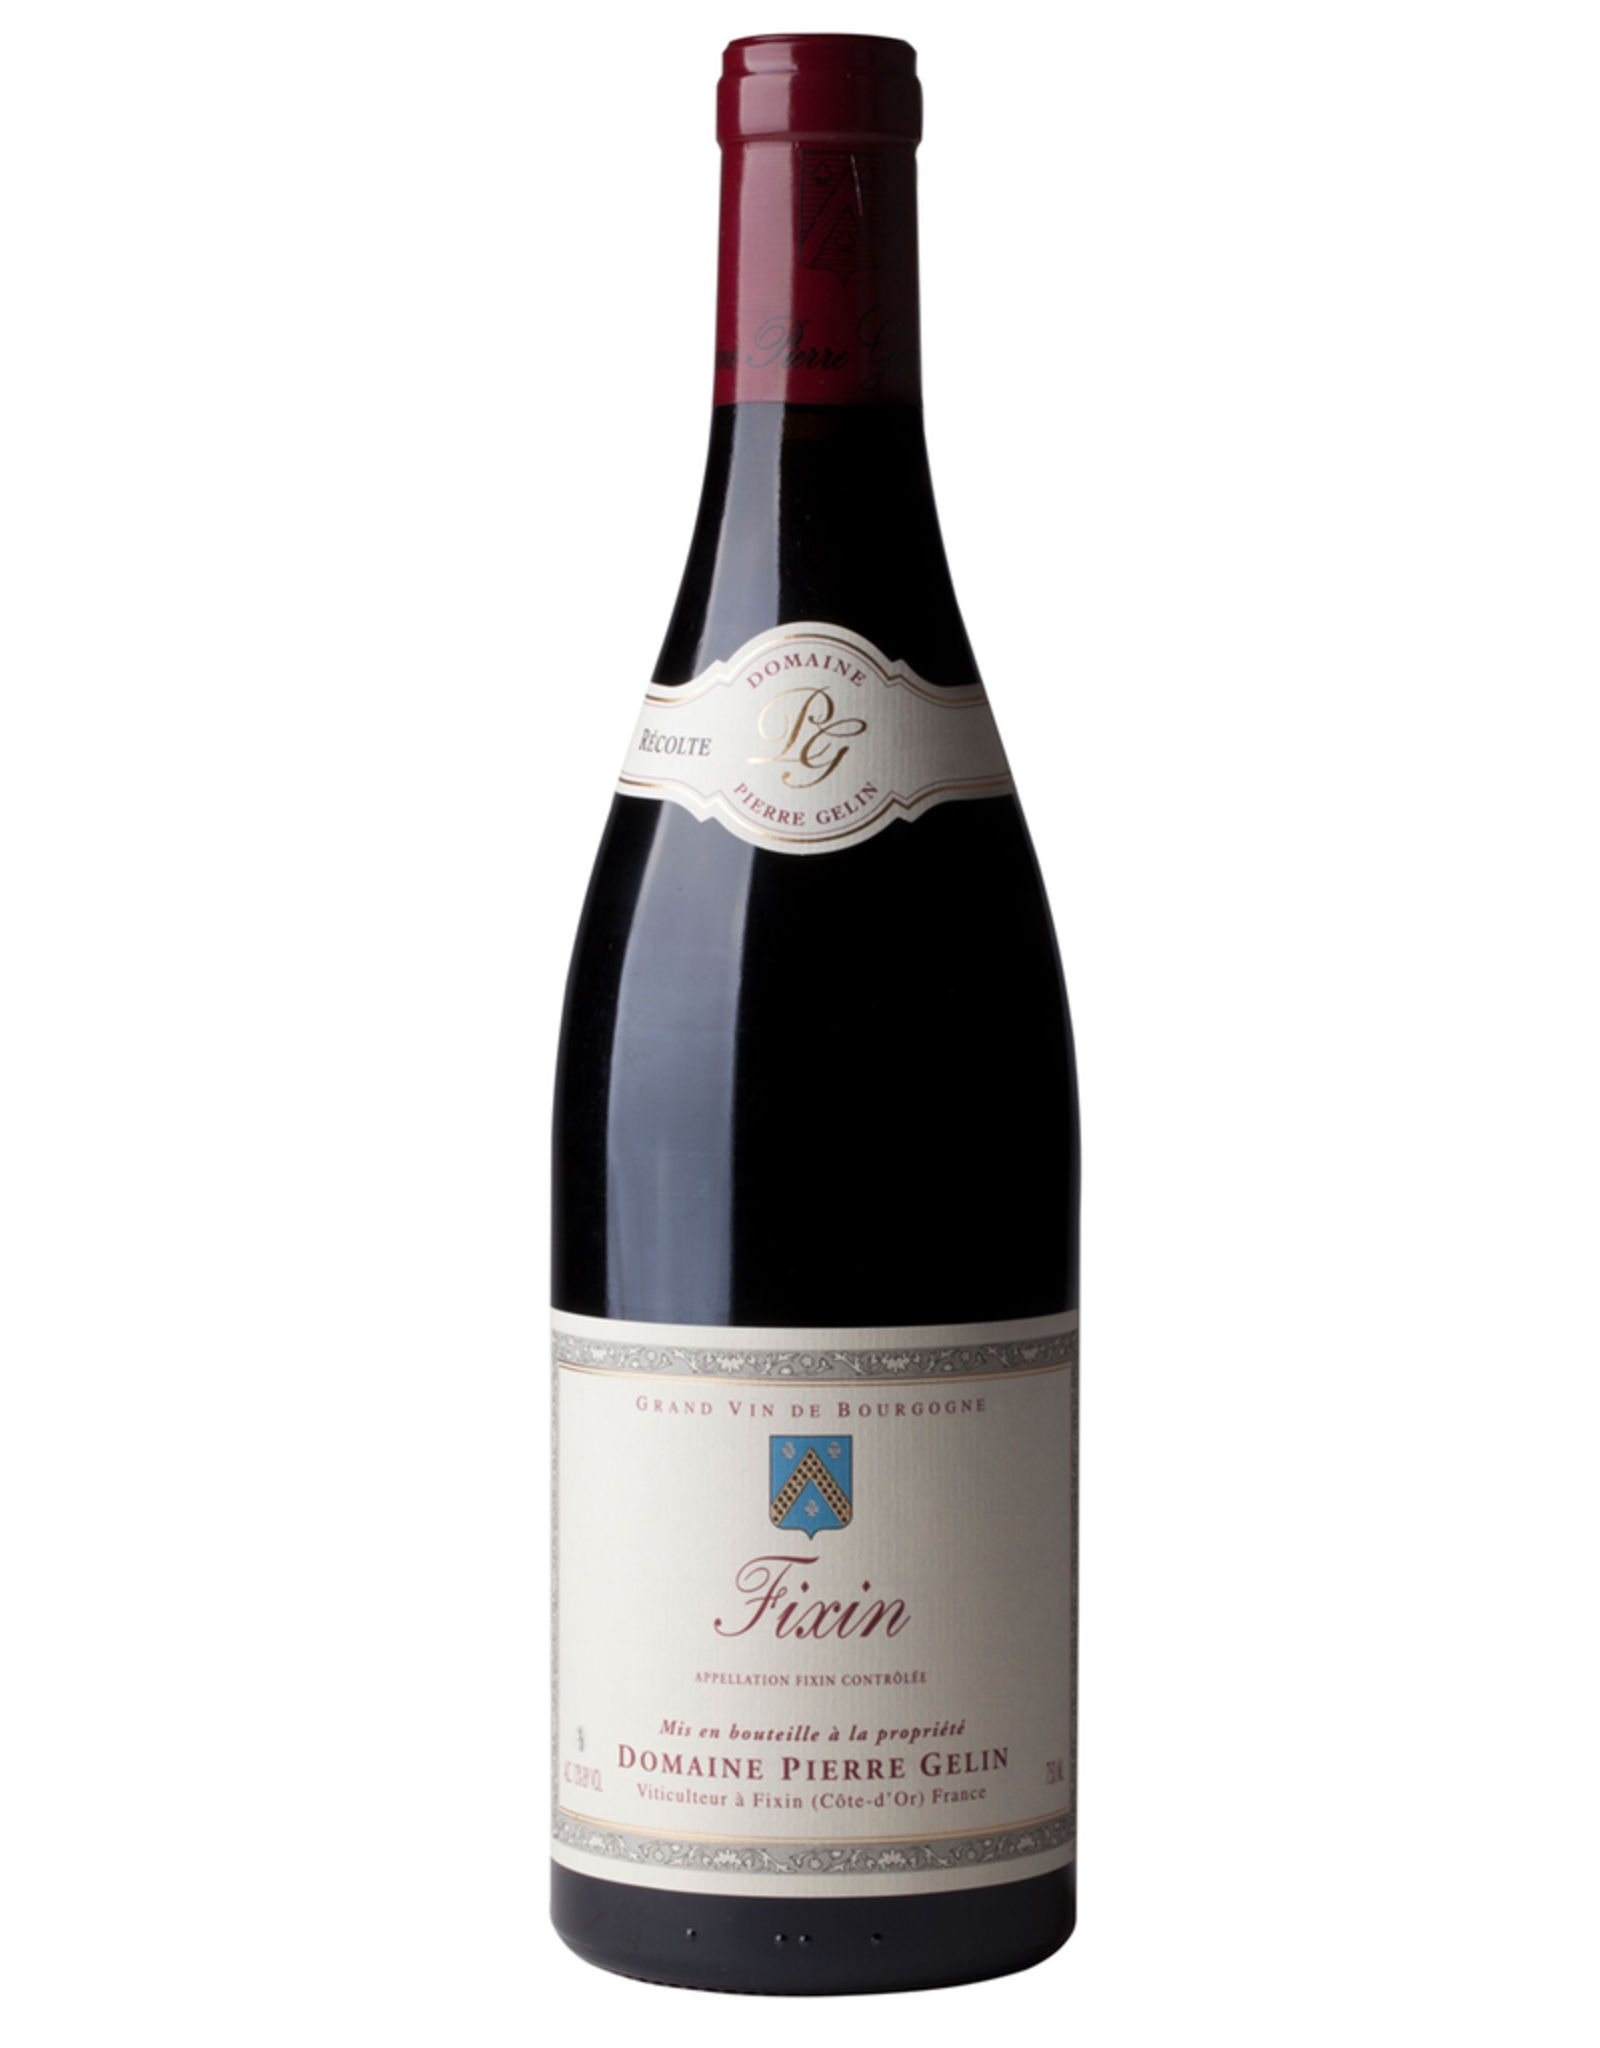 Red Wine 2016, Domaine Pierre Gelin Fixin, Pinot Noir, Cote-d'Or, Burgundy, France, 13.5% Alc, NR